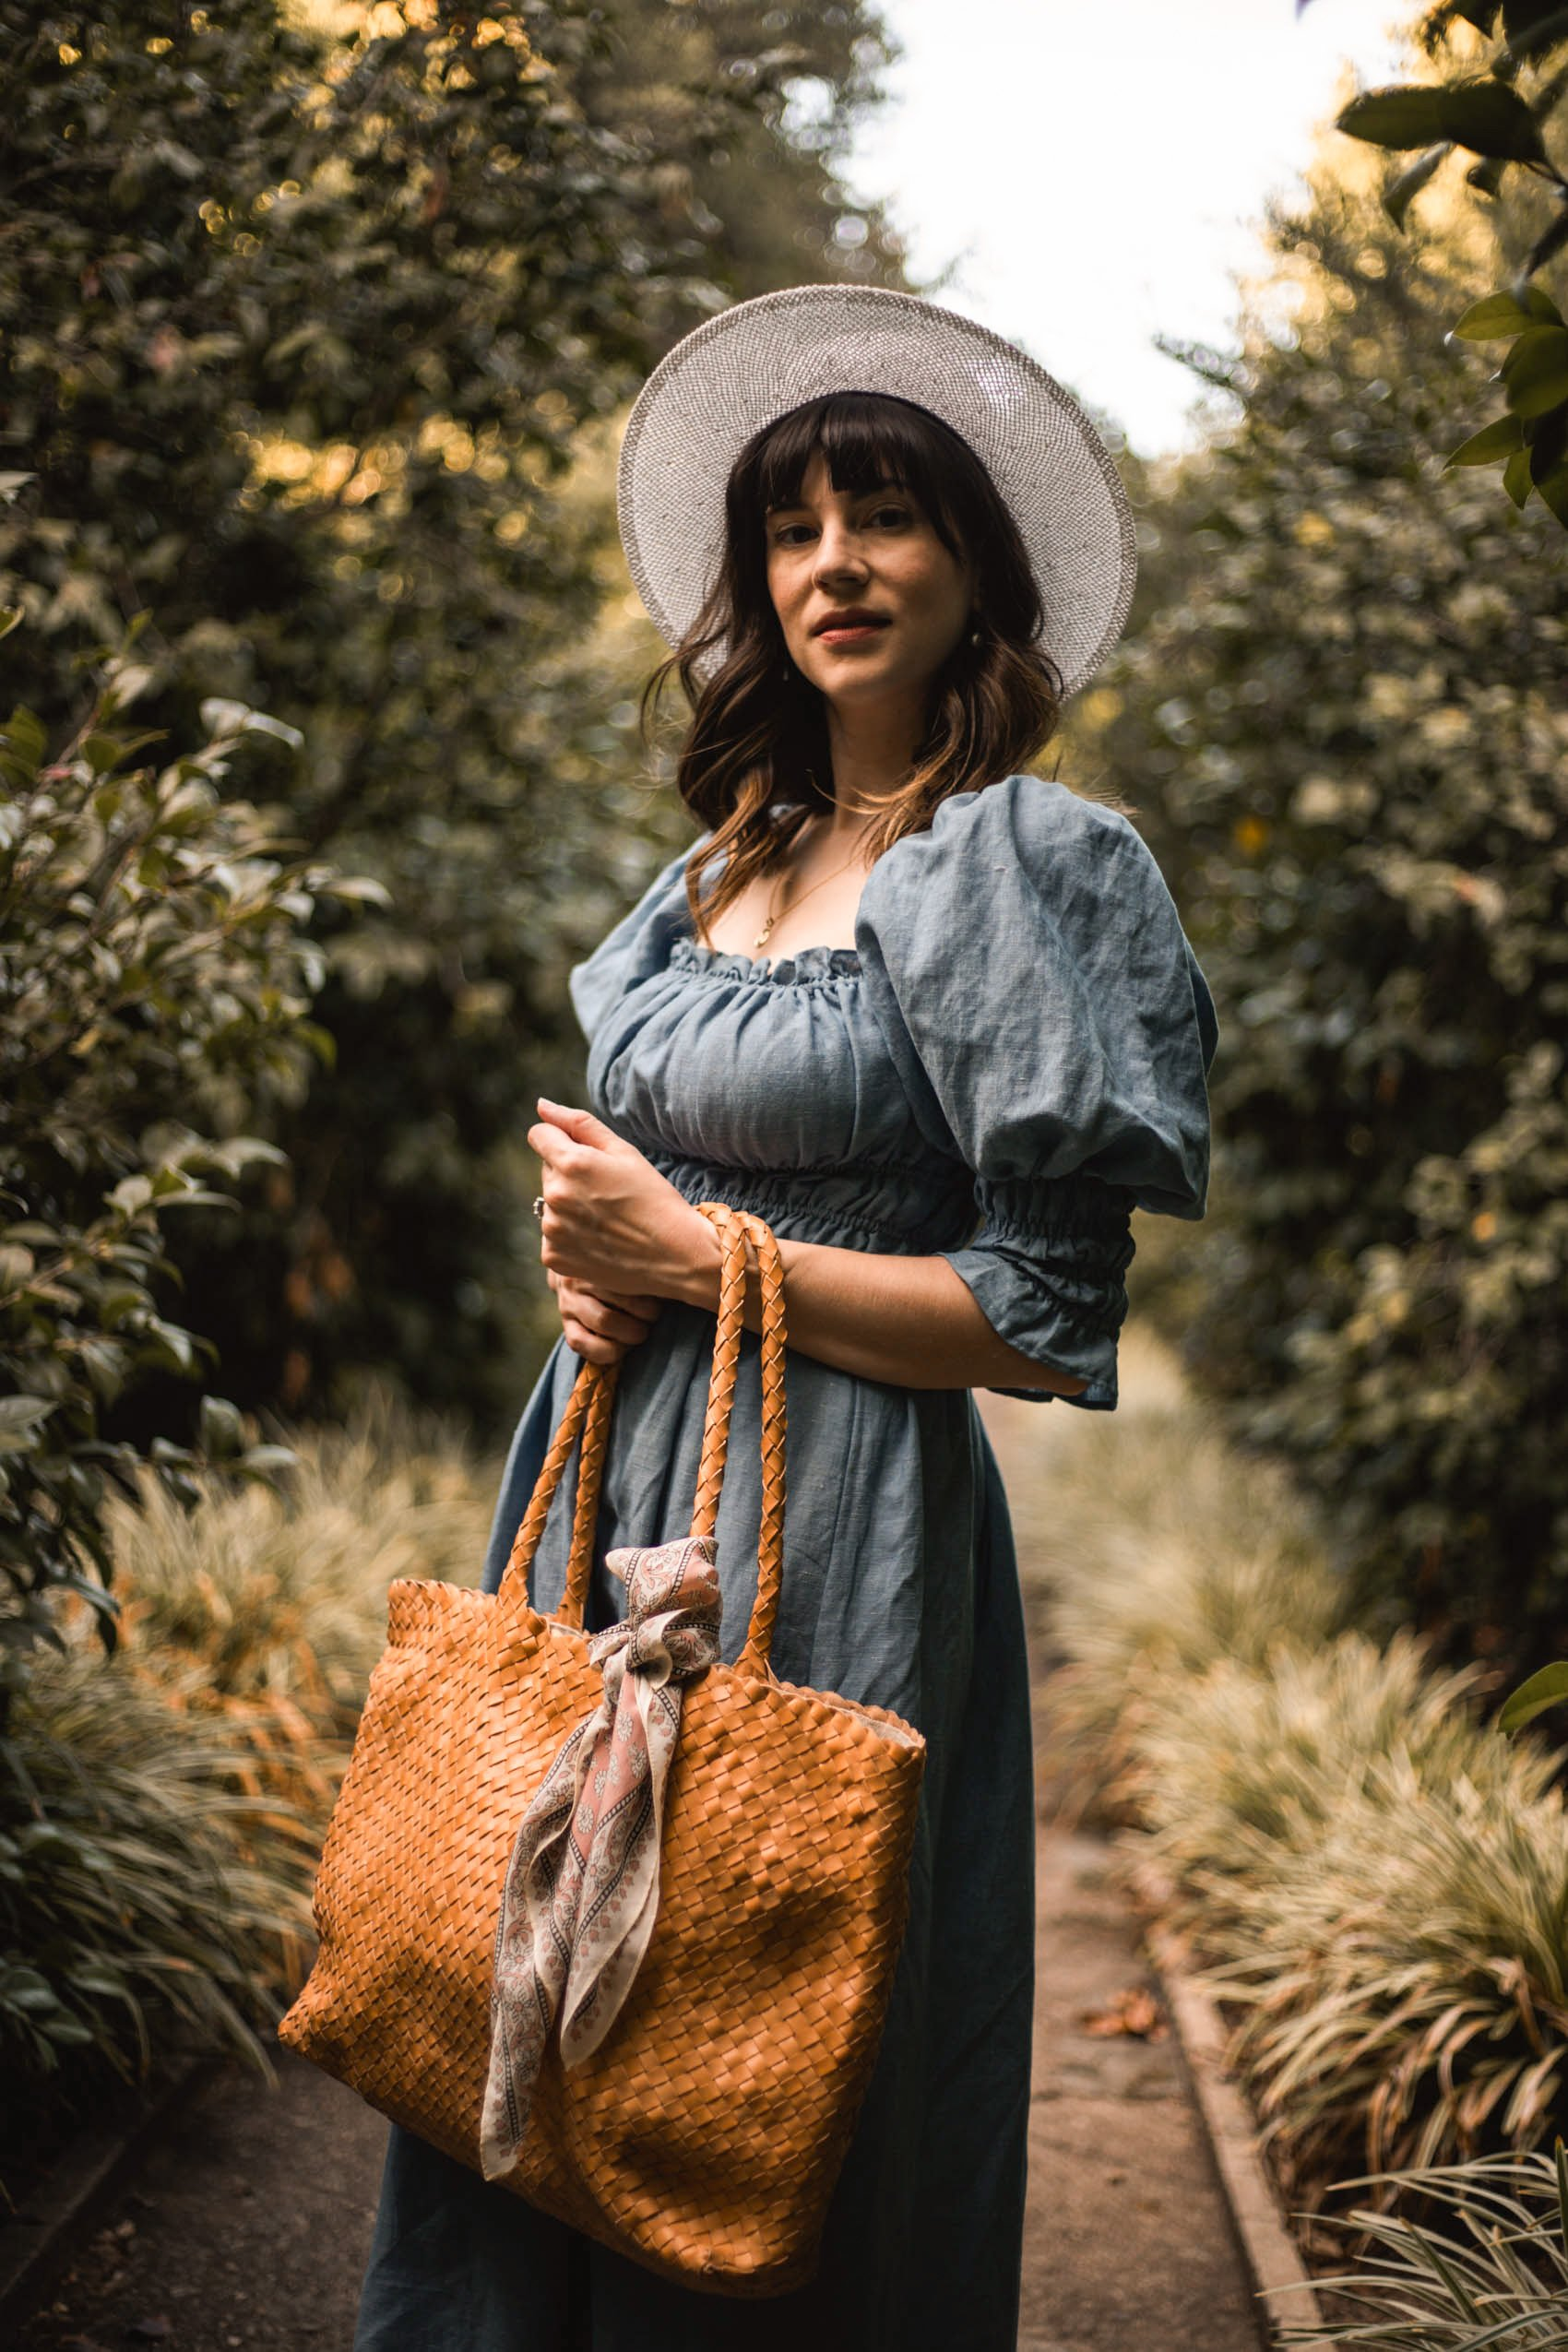 Jeans and a Teacup blogger wearing Puff Sleeve Linen Dress and Milaner Elena Tote Bag at Huntington Gardens